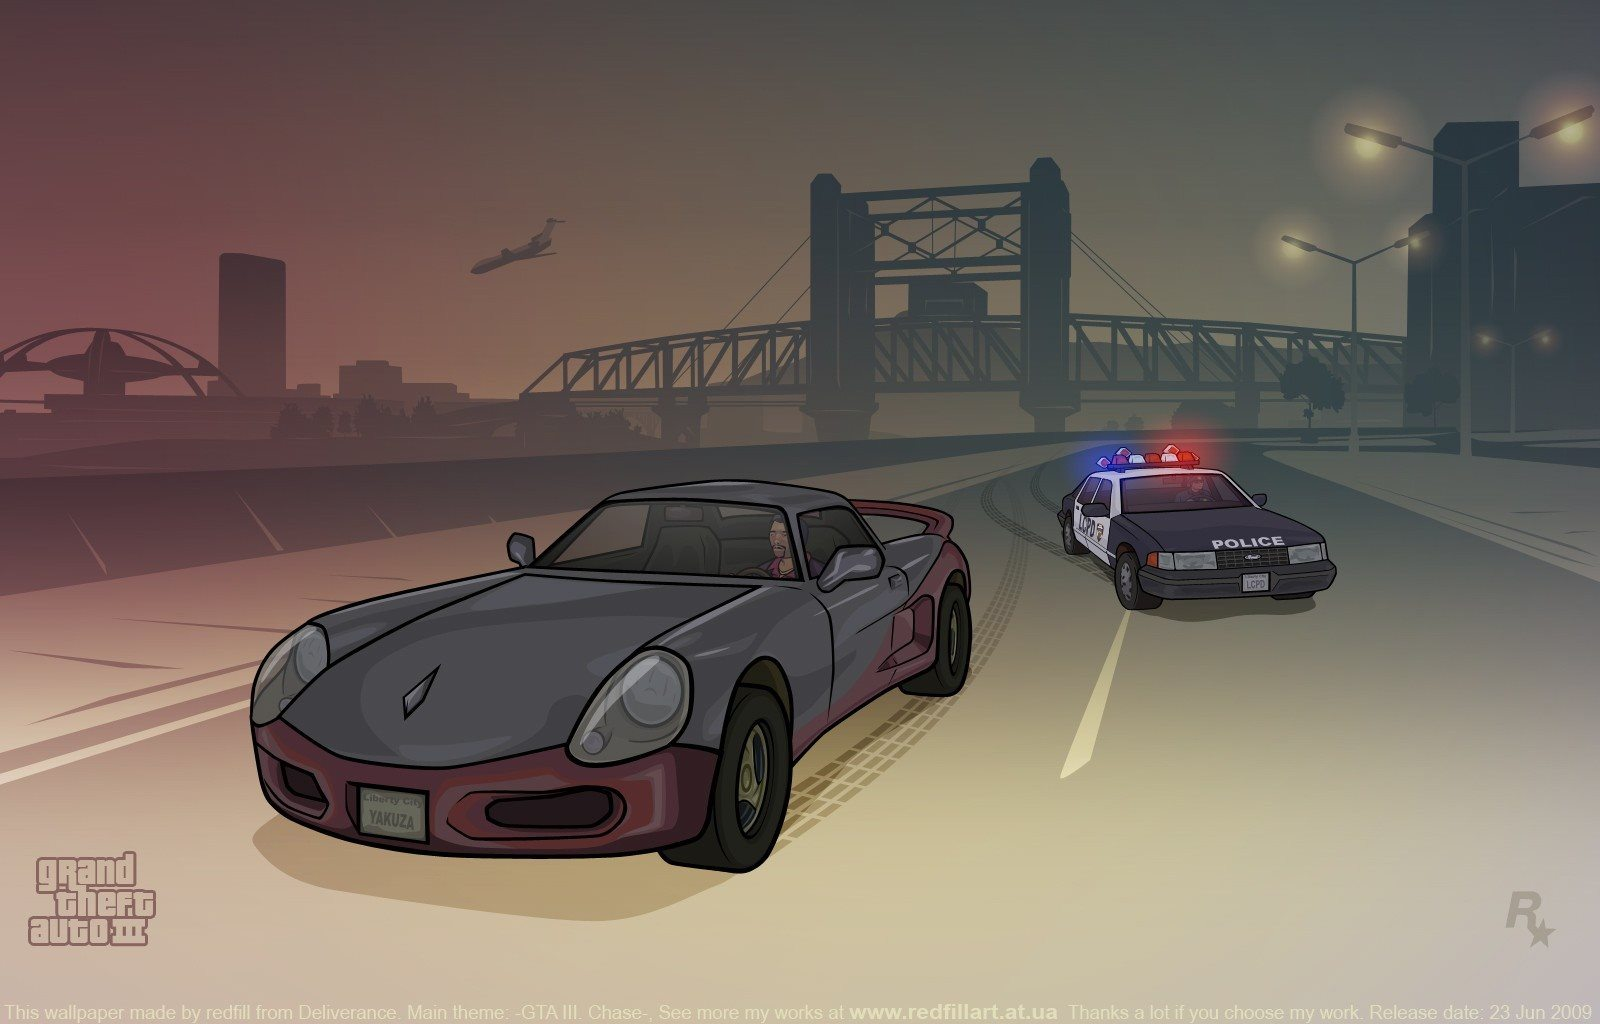 Grand-Theft-Auto-III-Wallpaper-00005